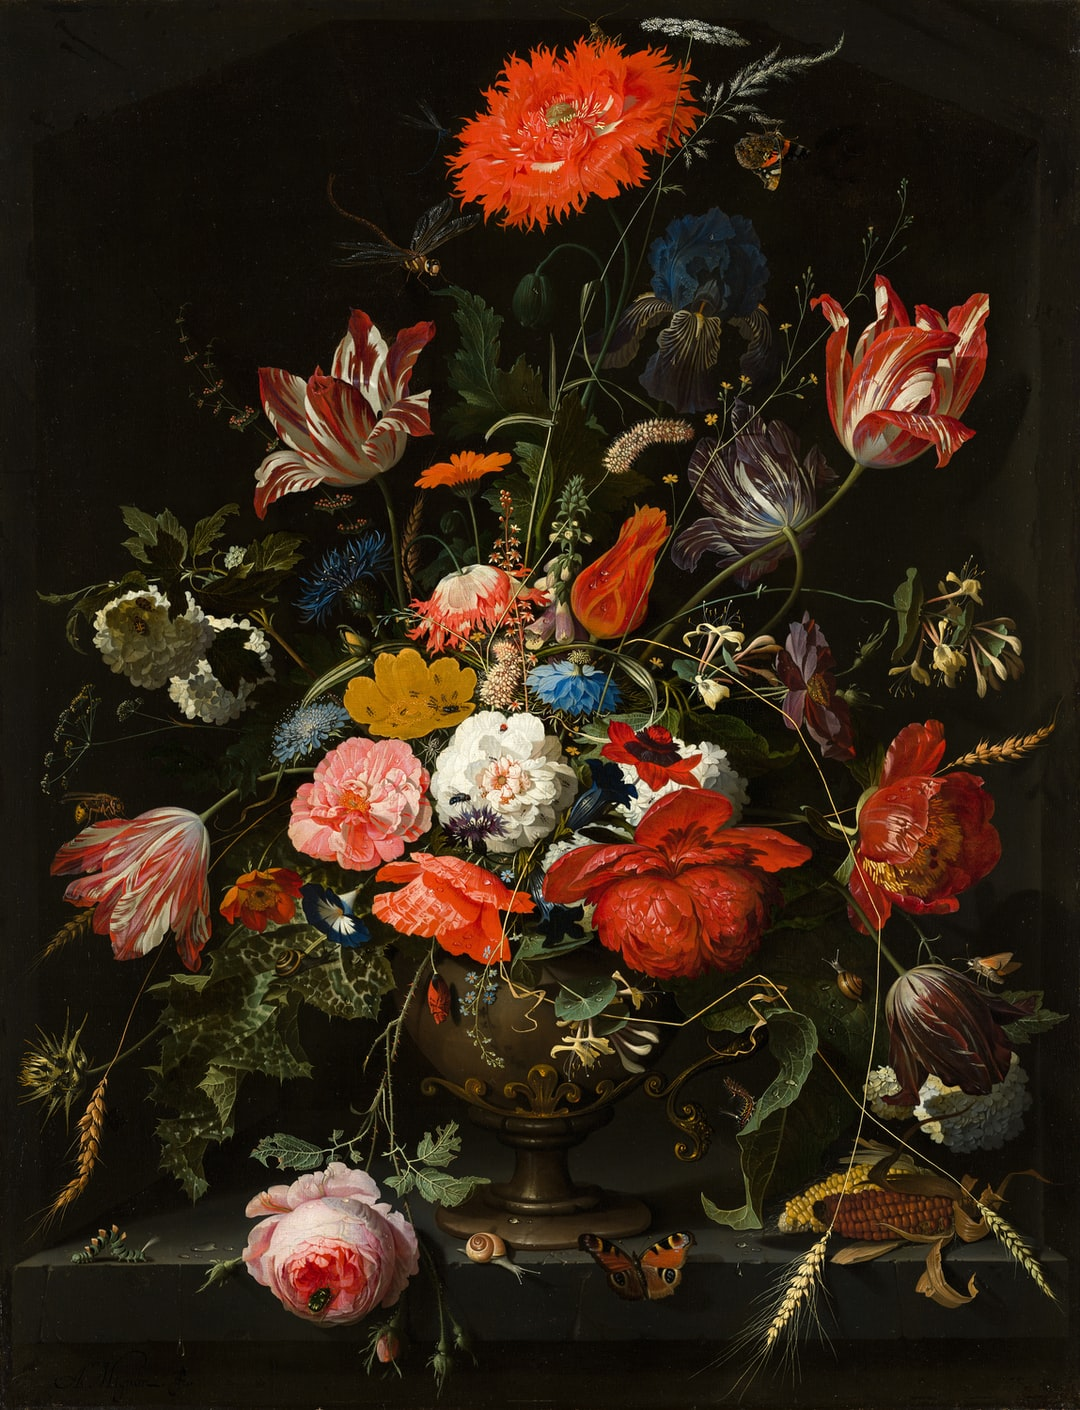 Flowers in a Metal Vase.